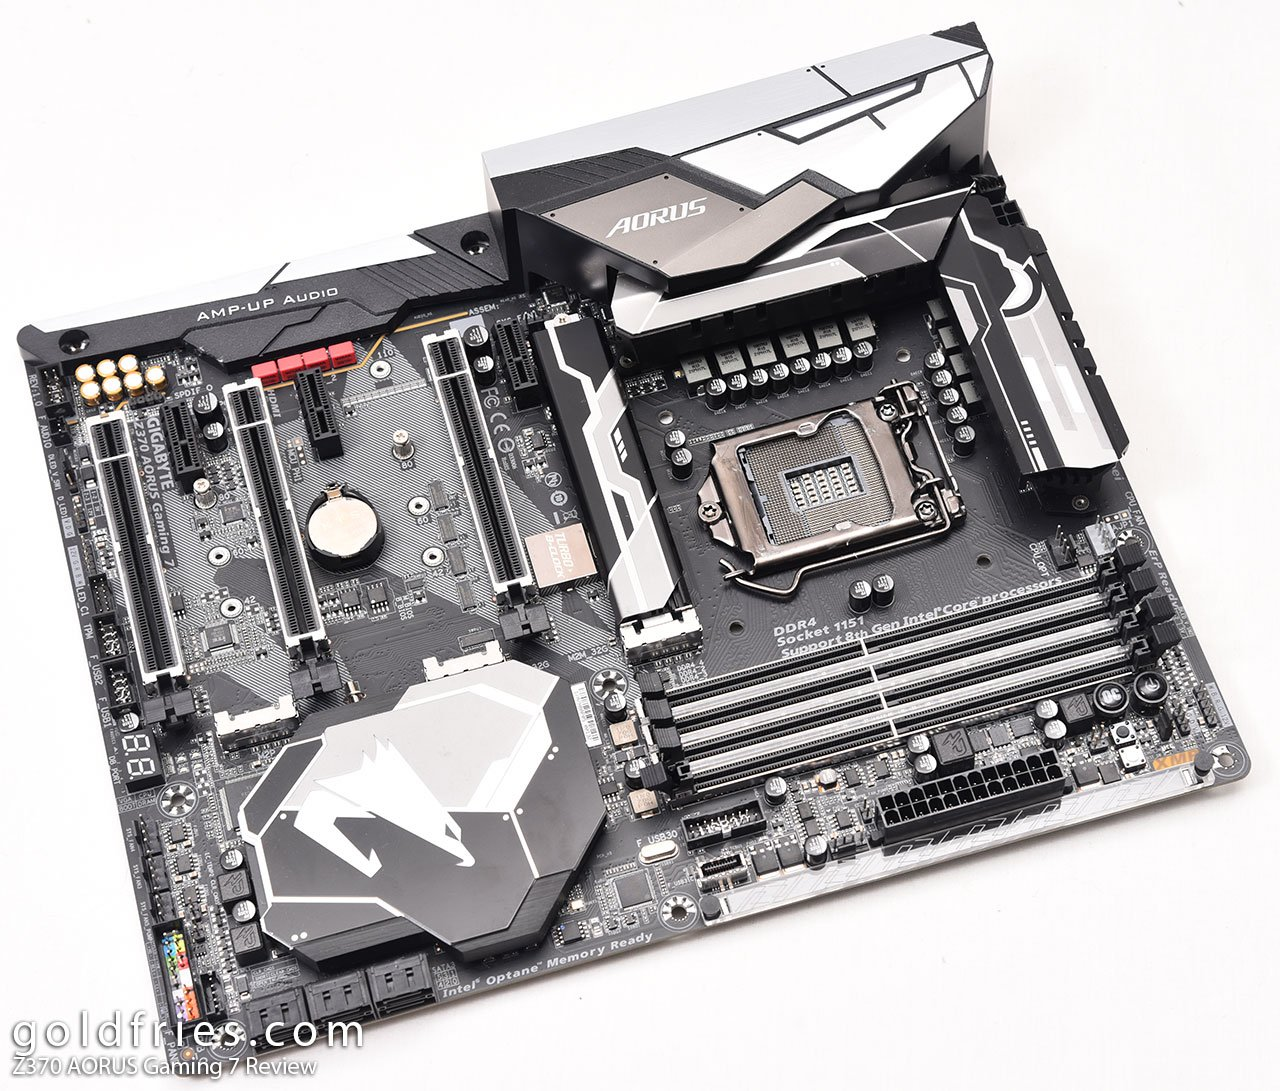 Z370 AORUS Gaming 7 Review